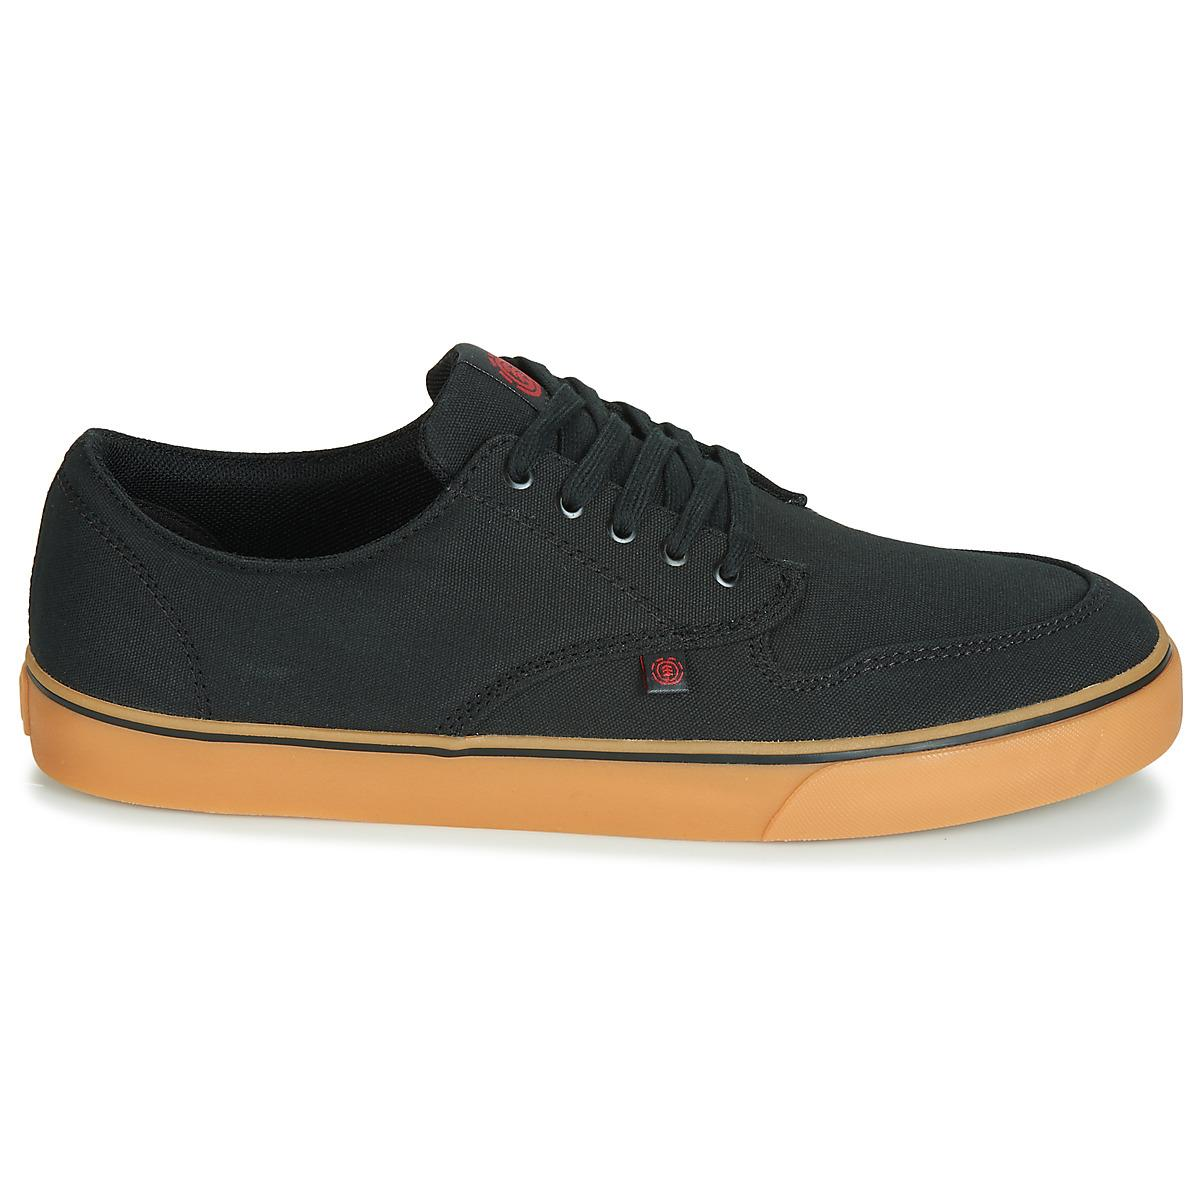 00598cdcbf945 Element Topaz C3 Shoes (trainers) in Black for Men - Lyst